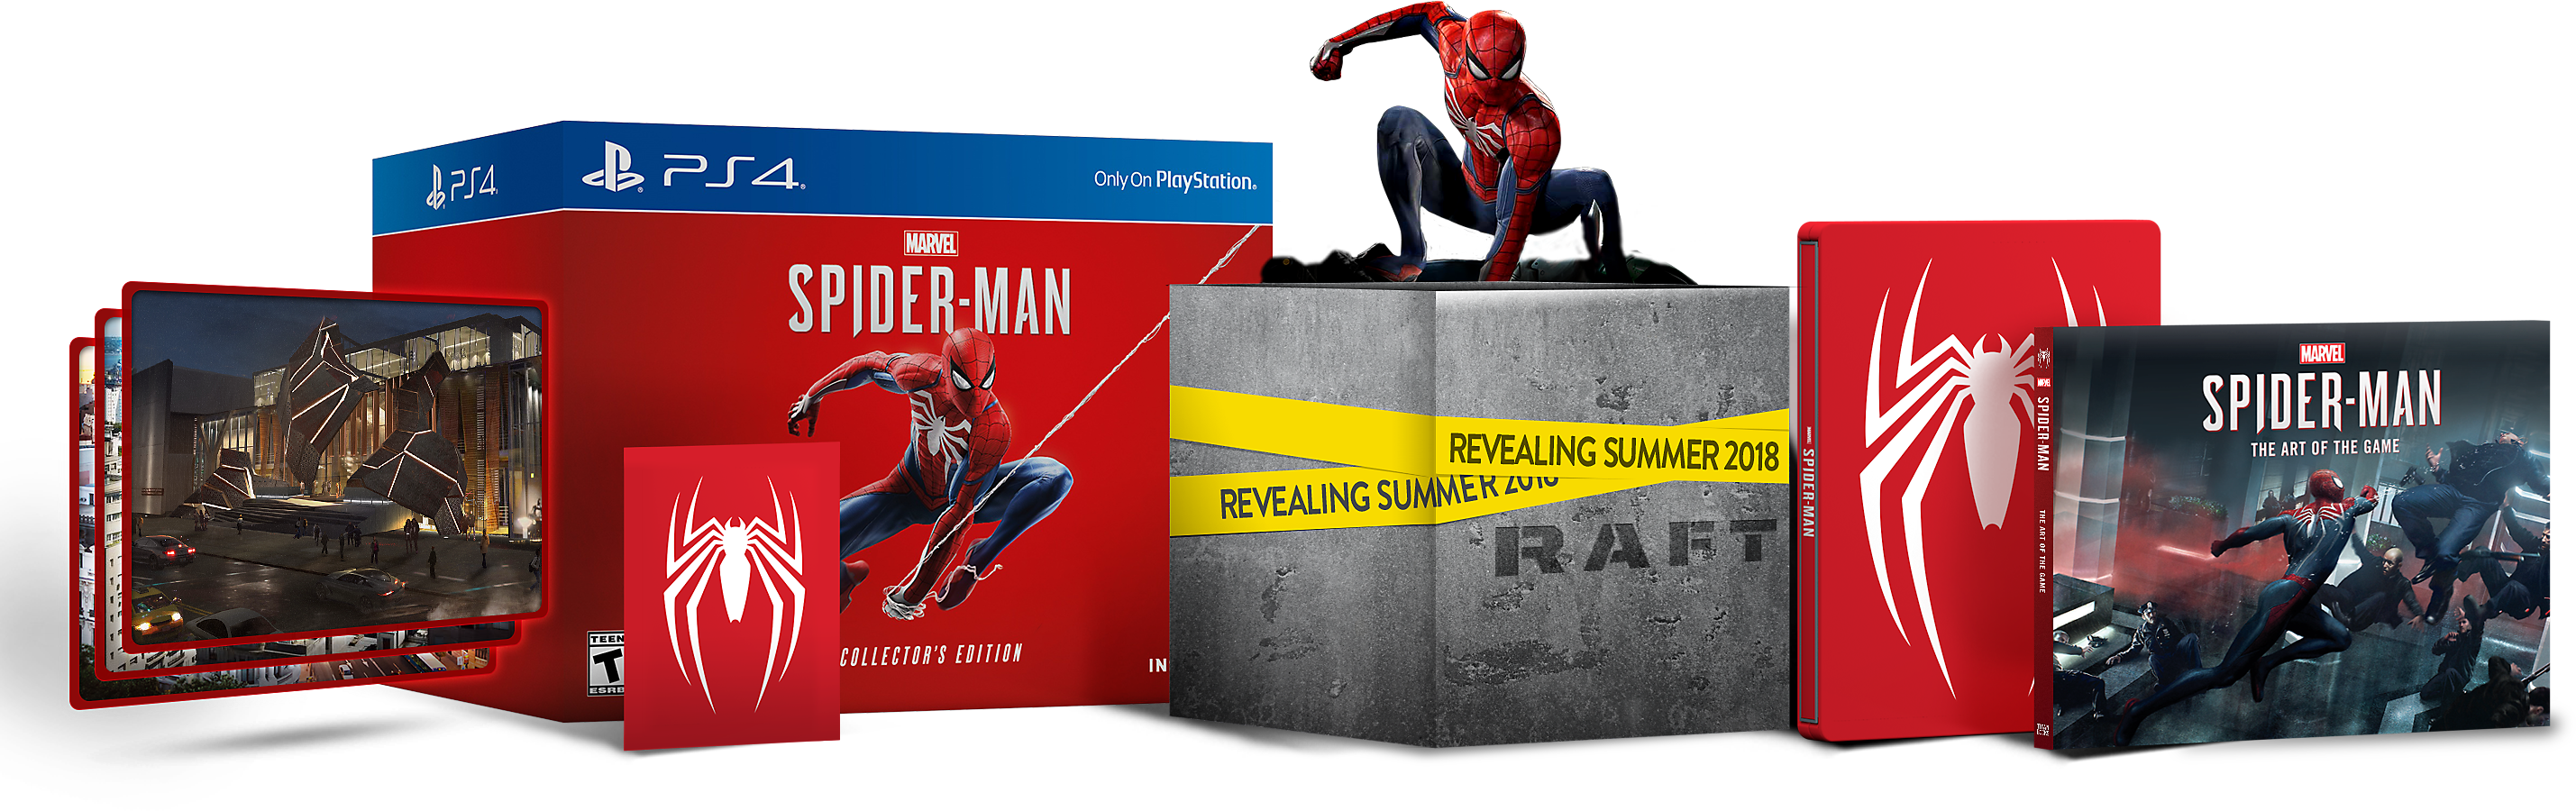 Collector's Edition Box - Marvel's Spider-Man